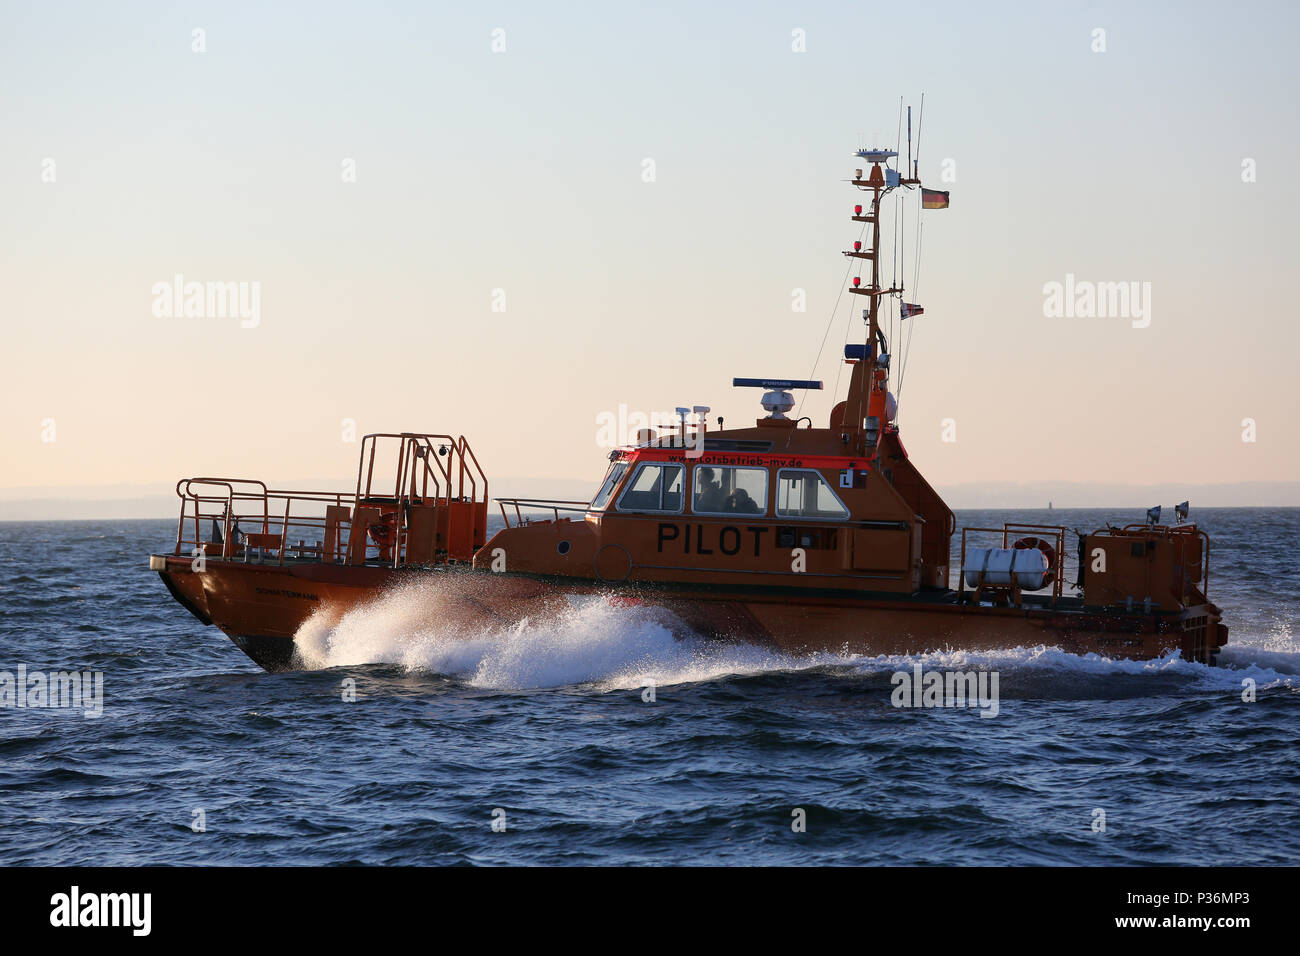 Wismar, Germany, pilot boat on the Baltic Sea - Stock Image